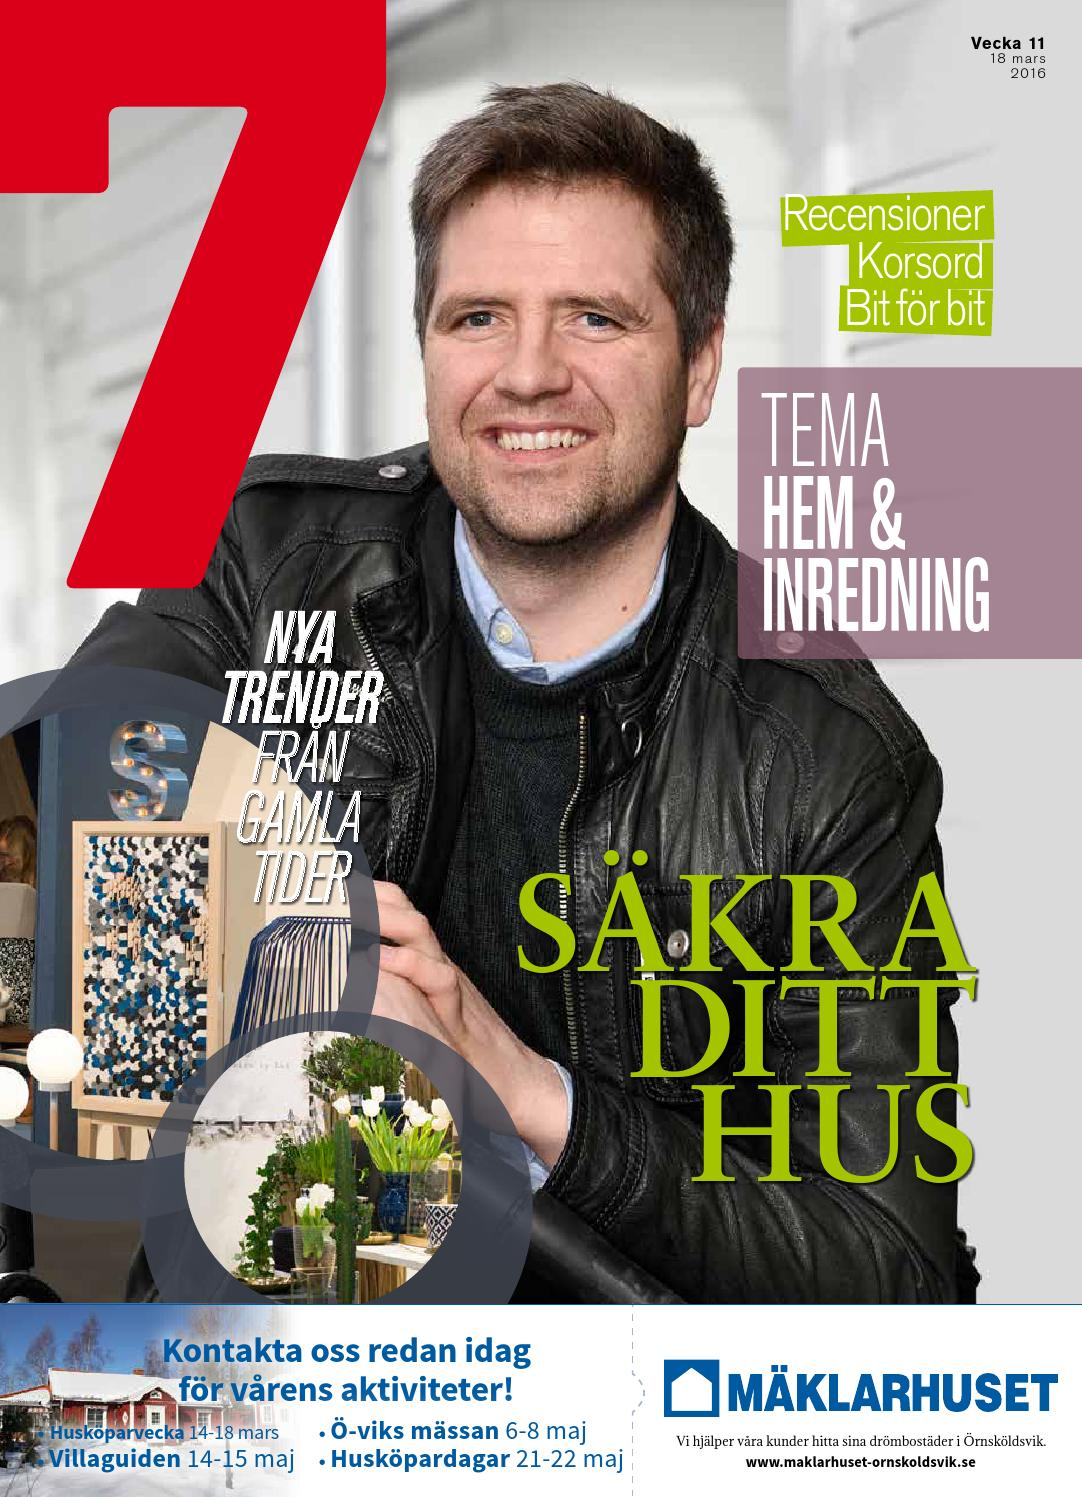 Tidningen 7 Vecka 11 2016 by 7an Mediapartner - issuu c0d0f7a2a1b77